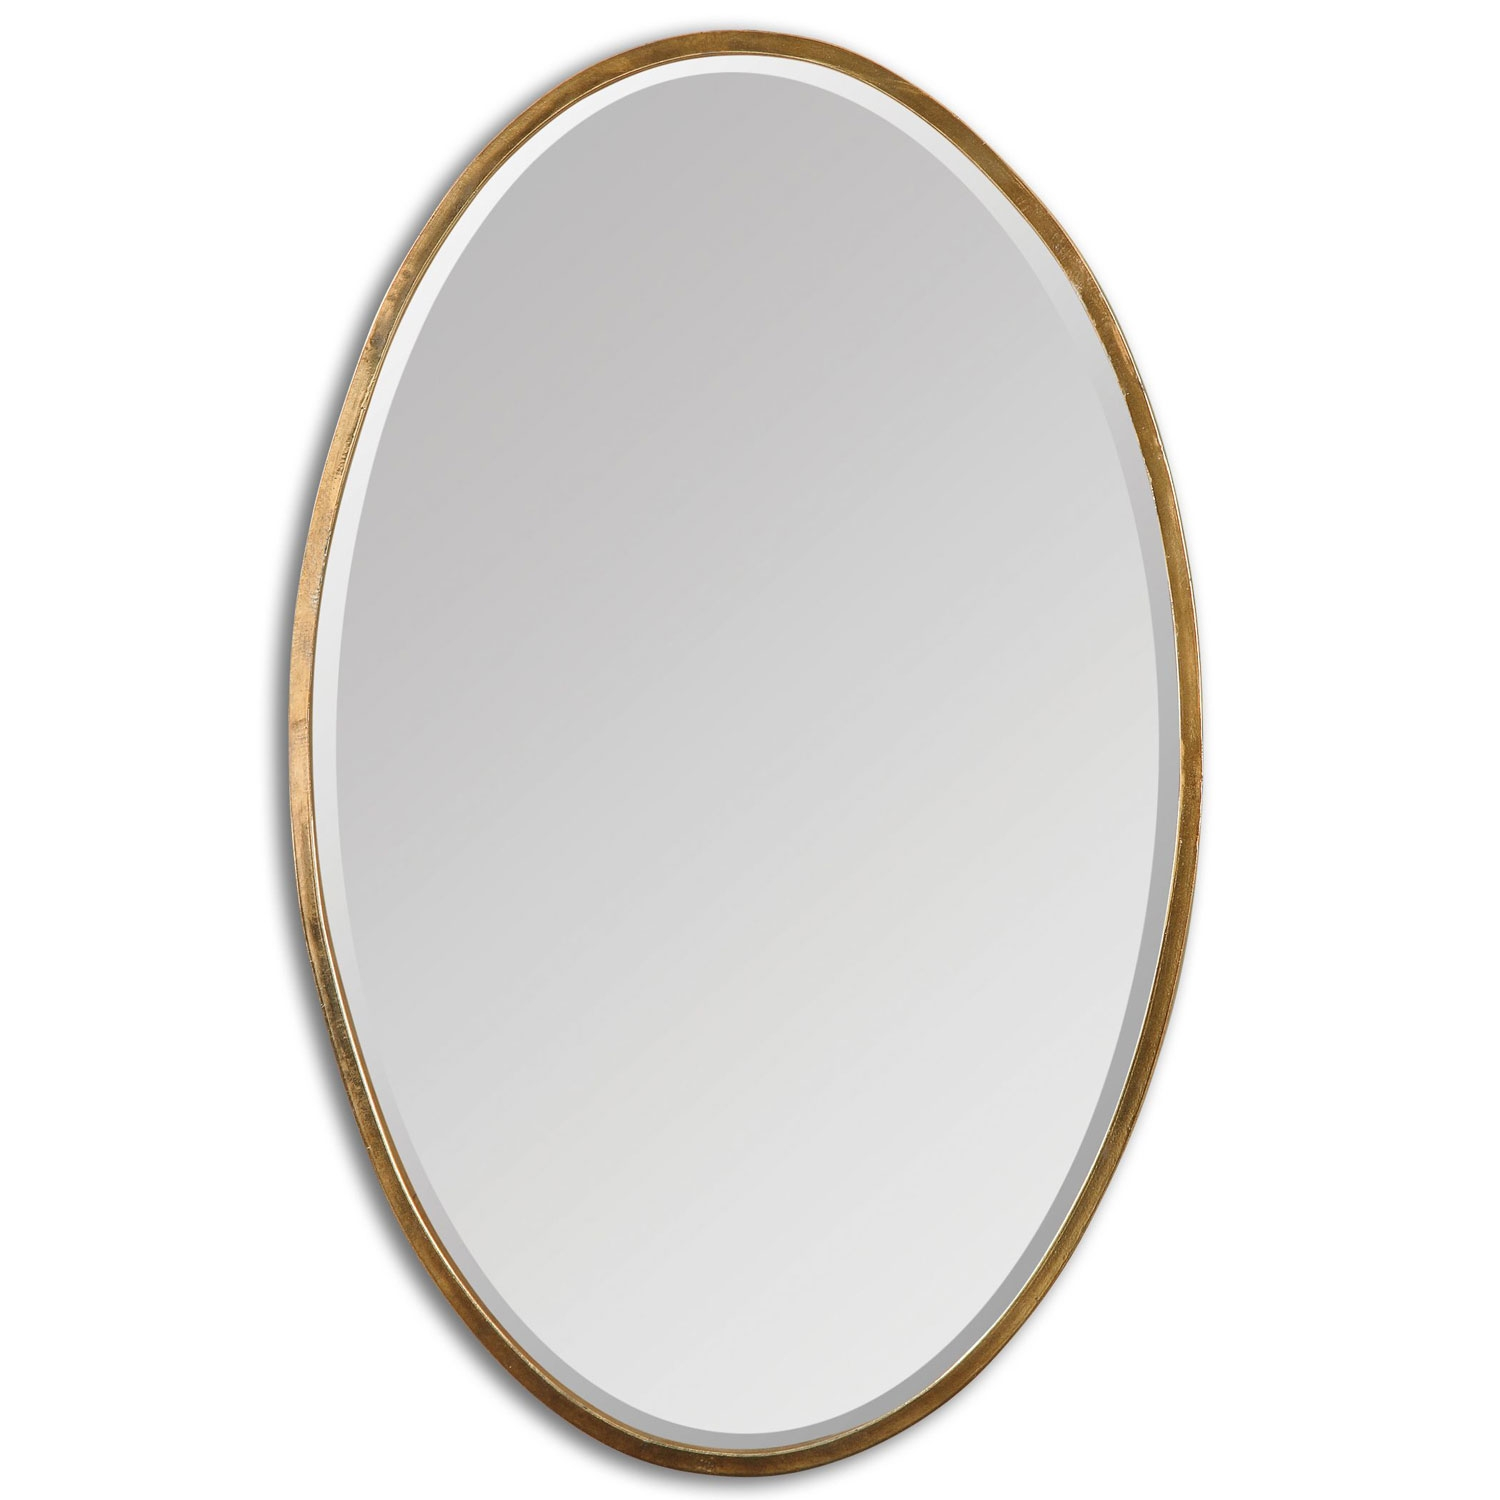 Herleva Oval Antique Gold Oval Mirror Uttermost Oval Mirrors Home Inside Oval Bevelled Mirror (View 15 of 15)